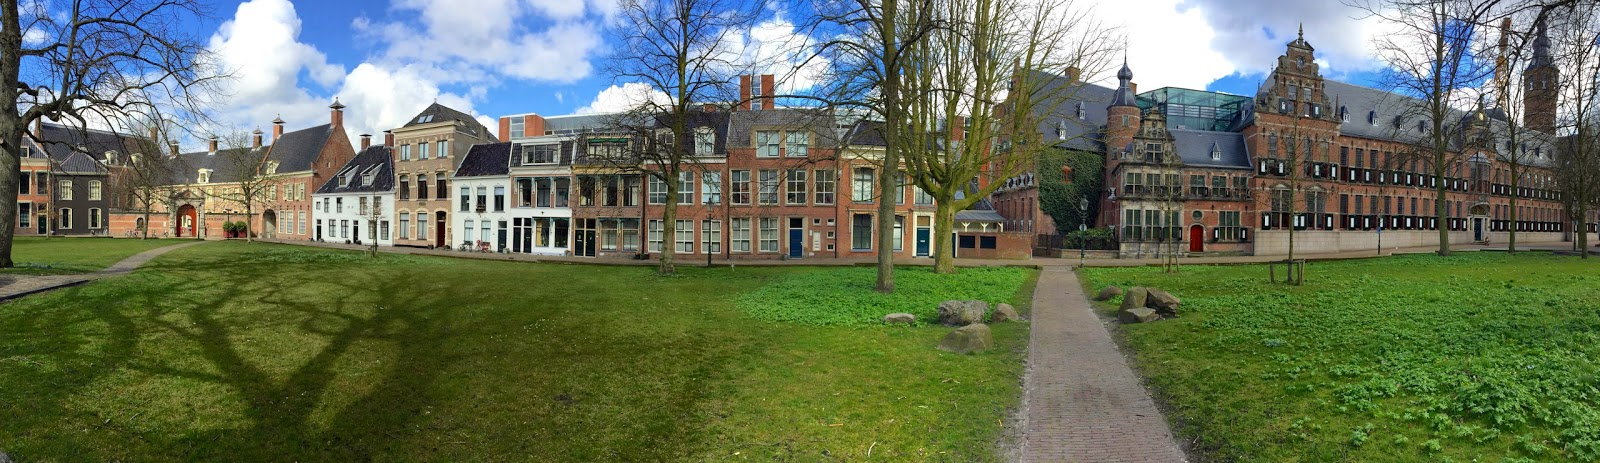 Panorama view of the Martinikerkhof in Groningen.